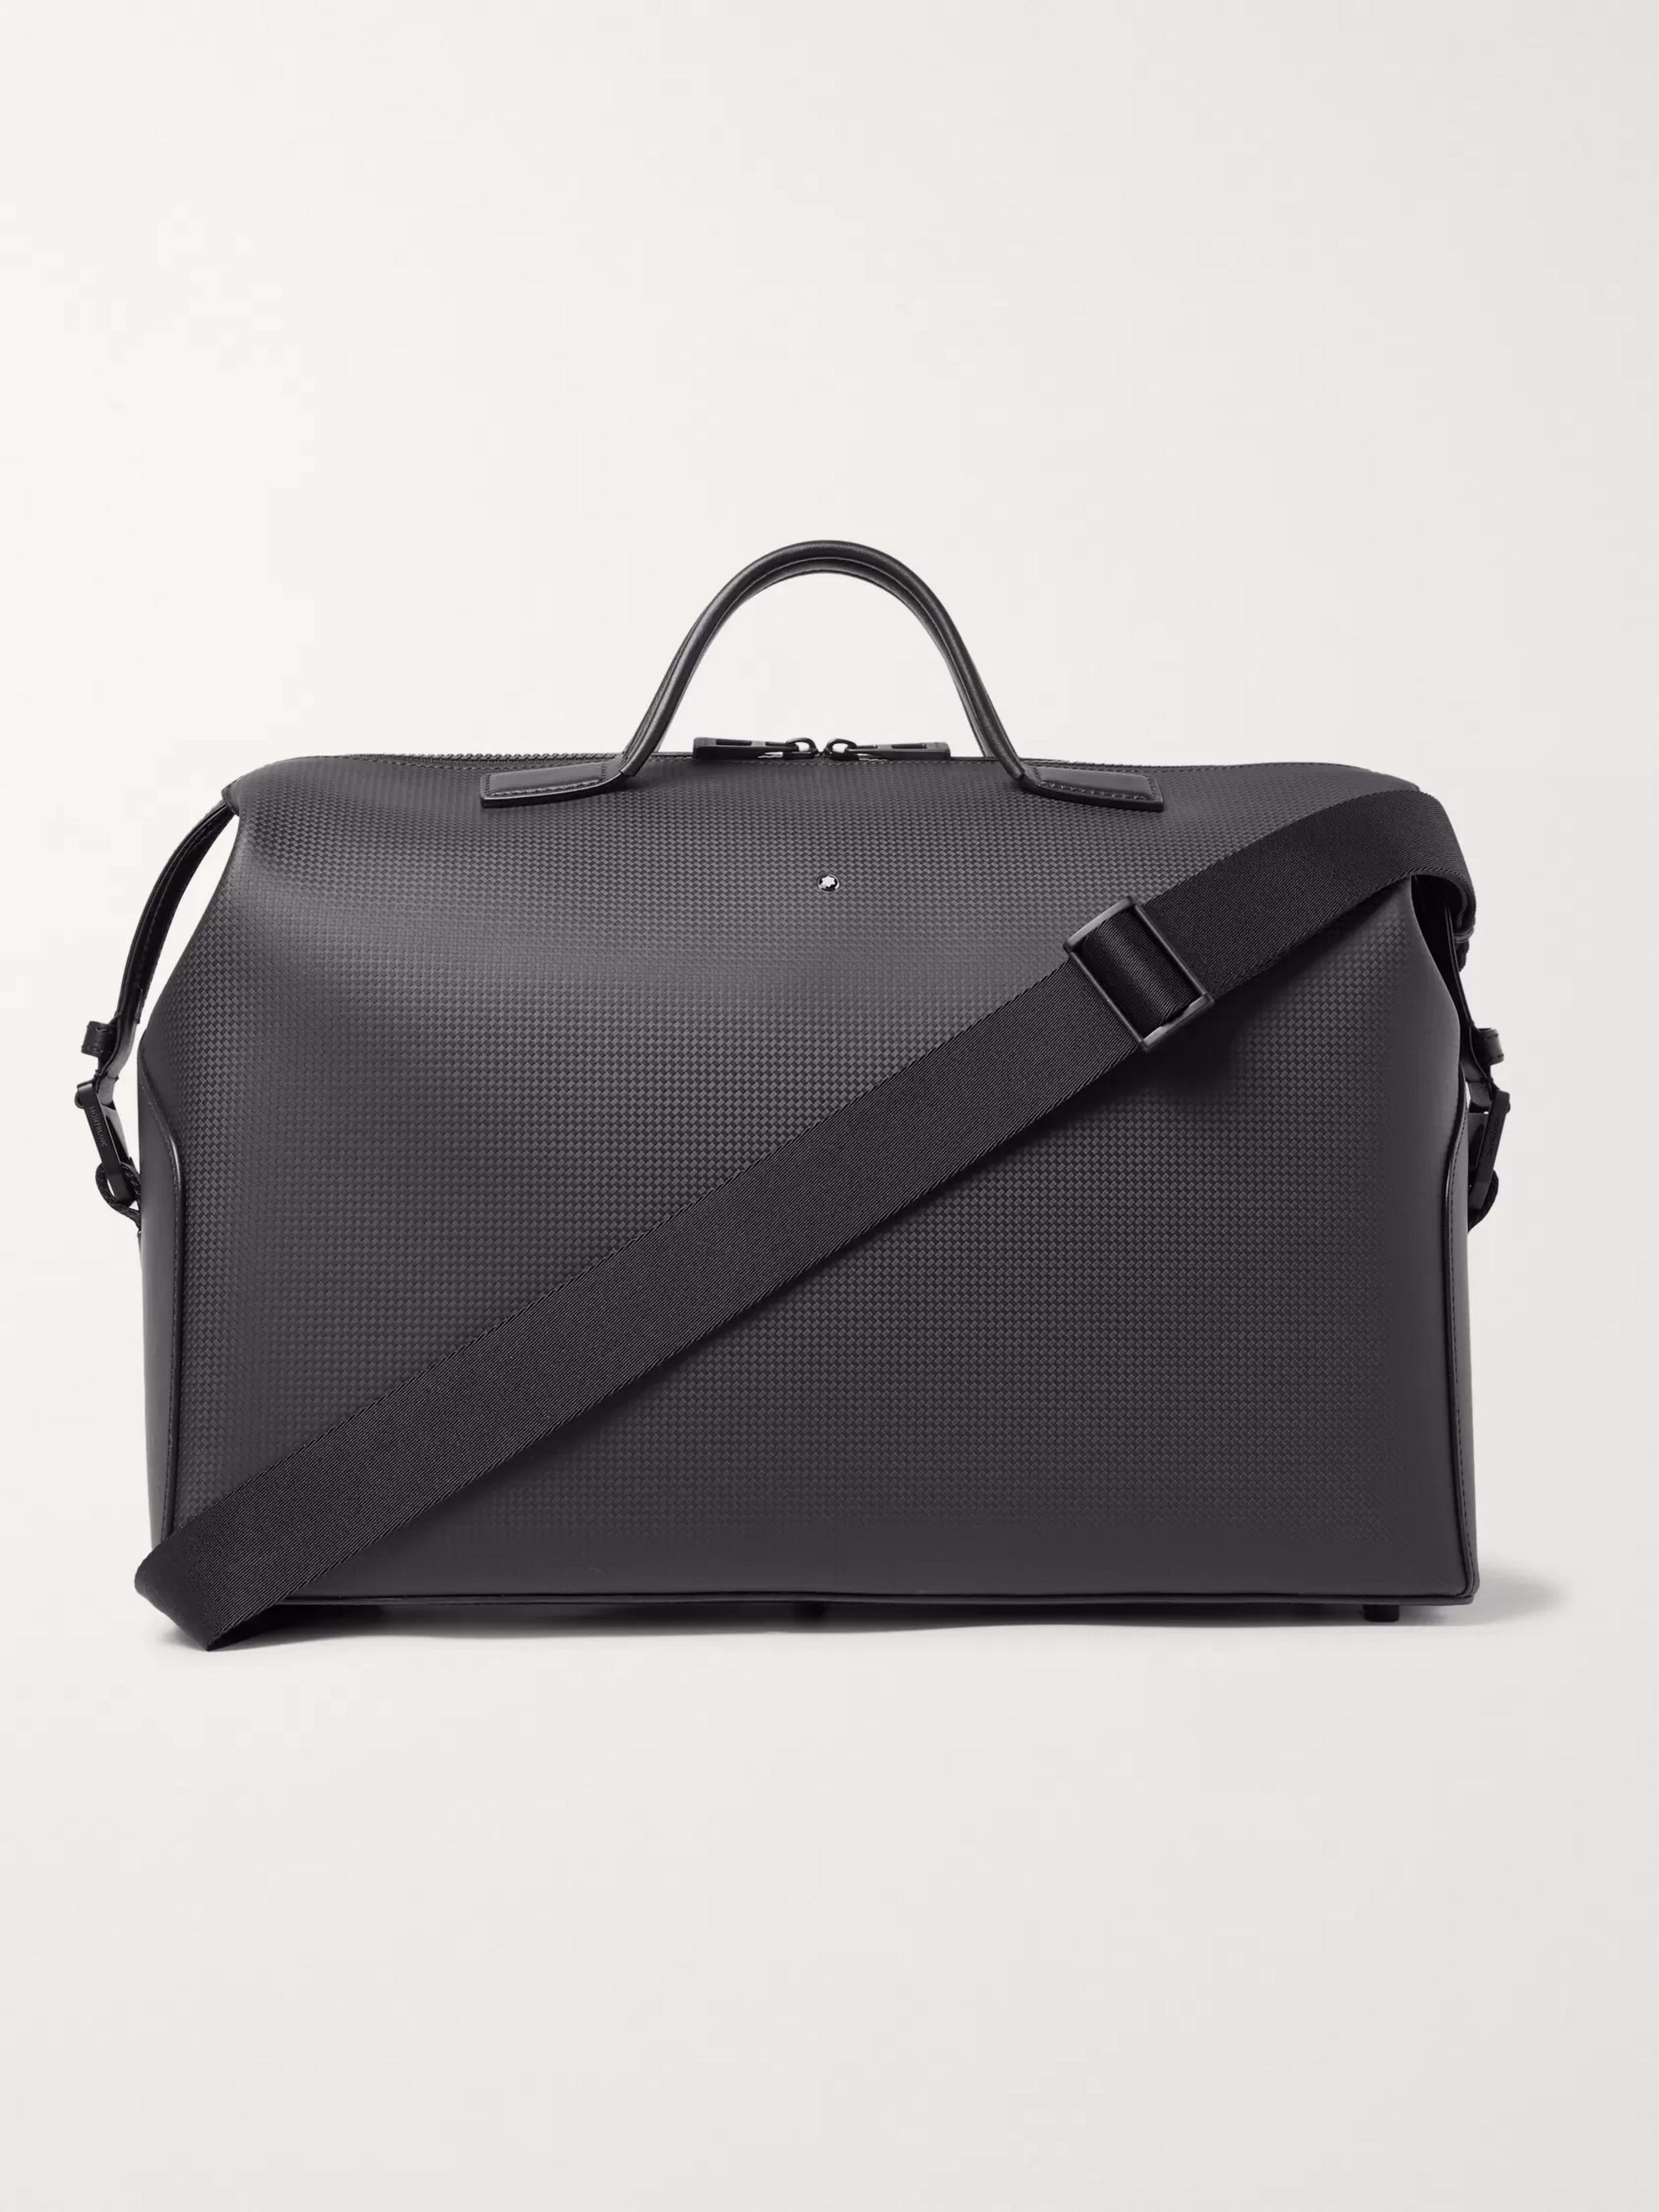 Montblanc Extreme 2.0 Leather Duffle Bag